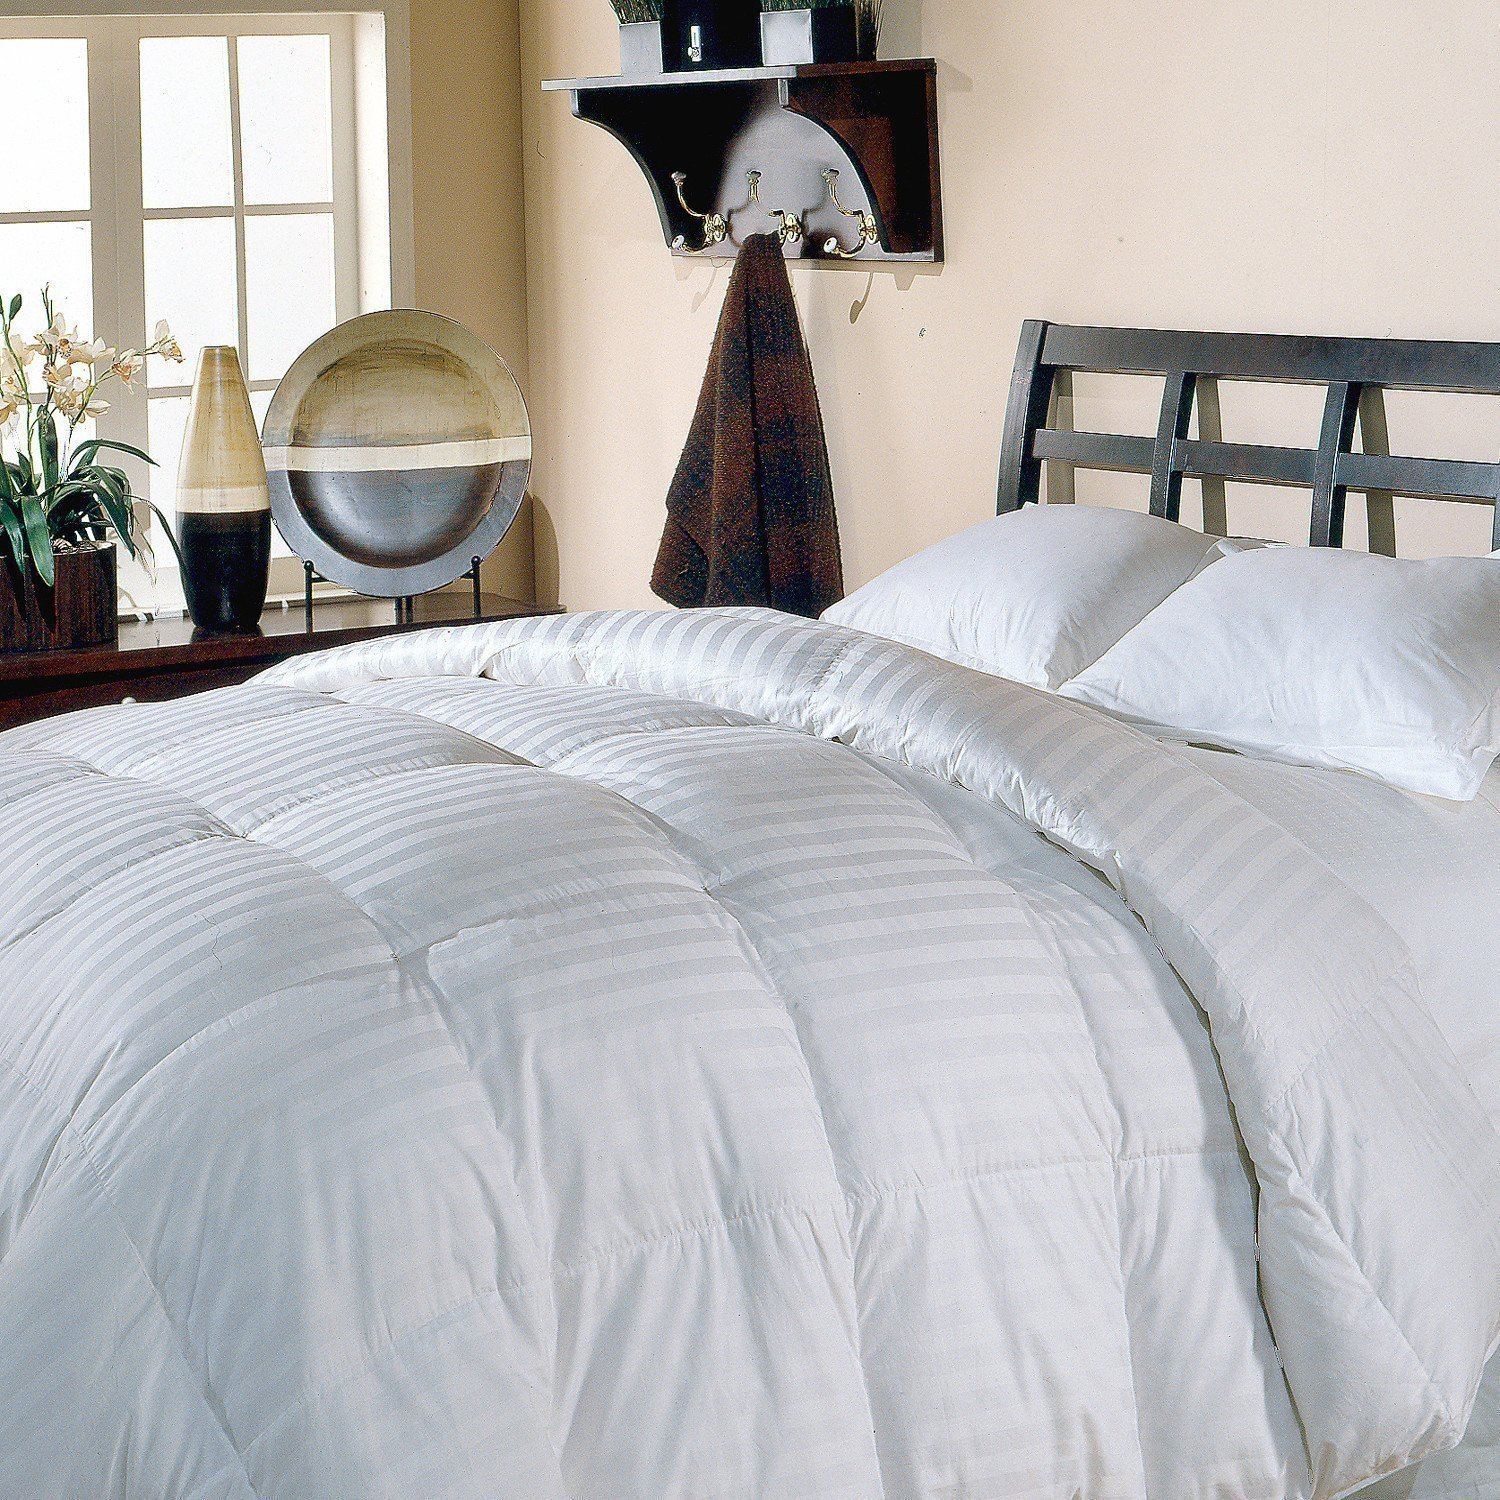 luxlen grand kingcalifornia king white goose down comforter. top cal king down comforters around  best goose down comforter